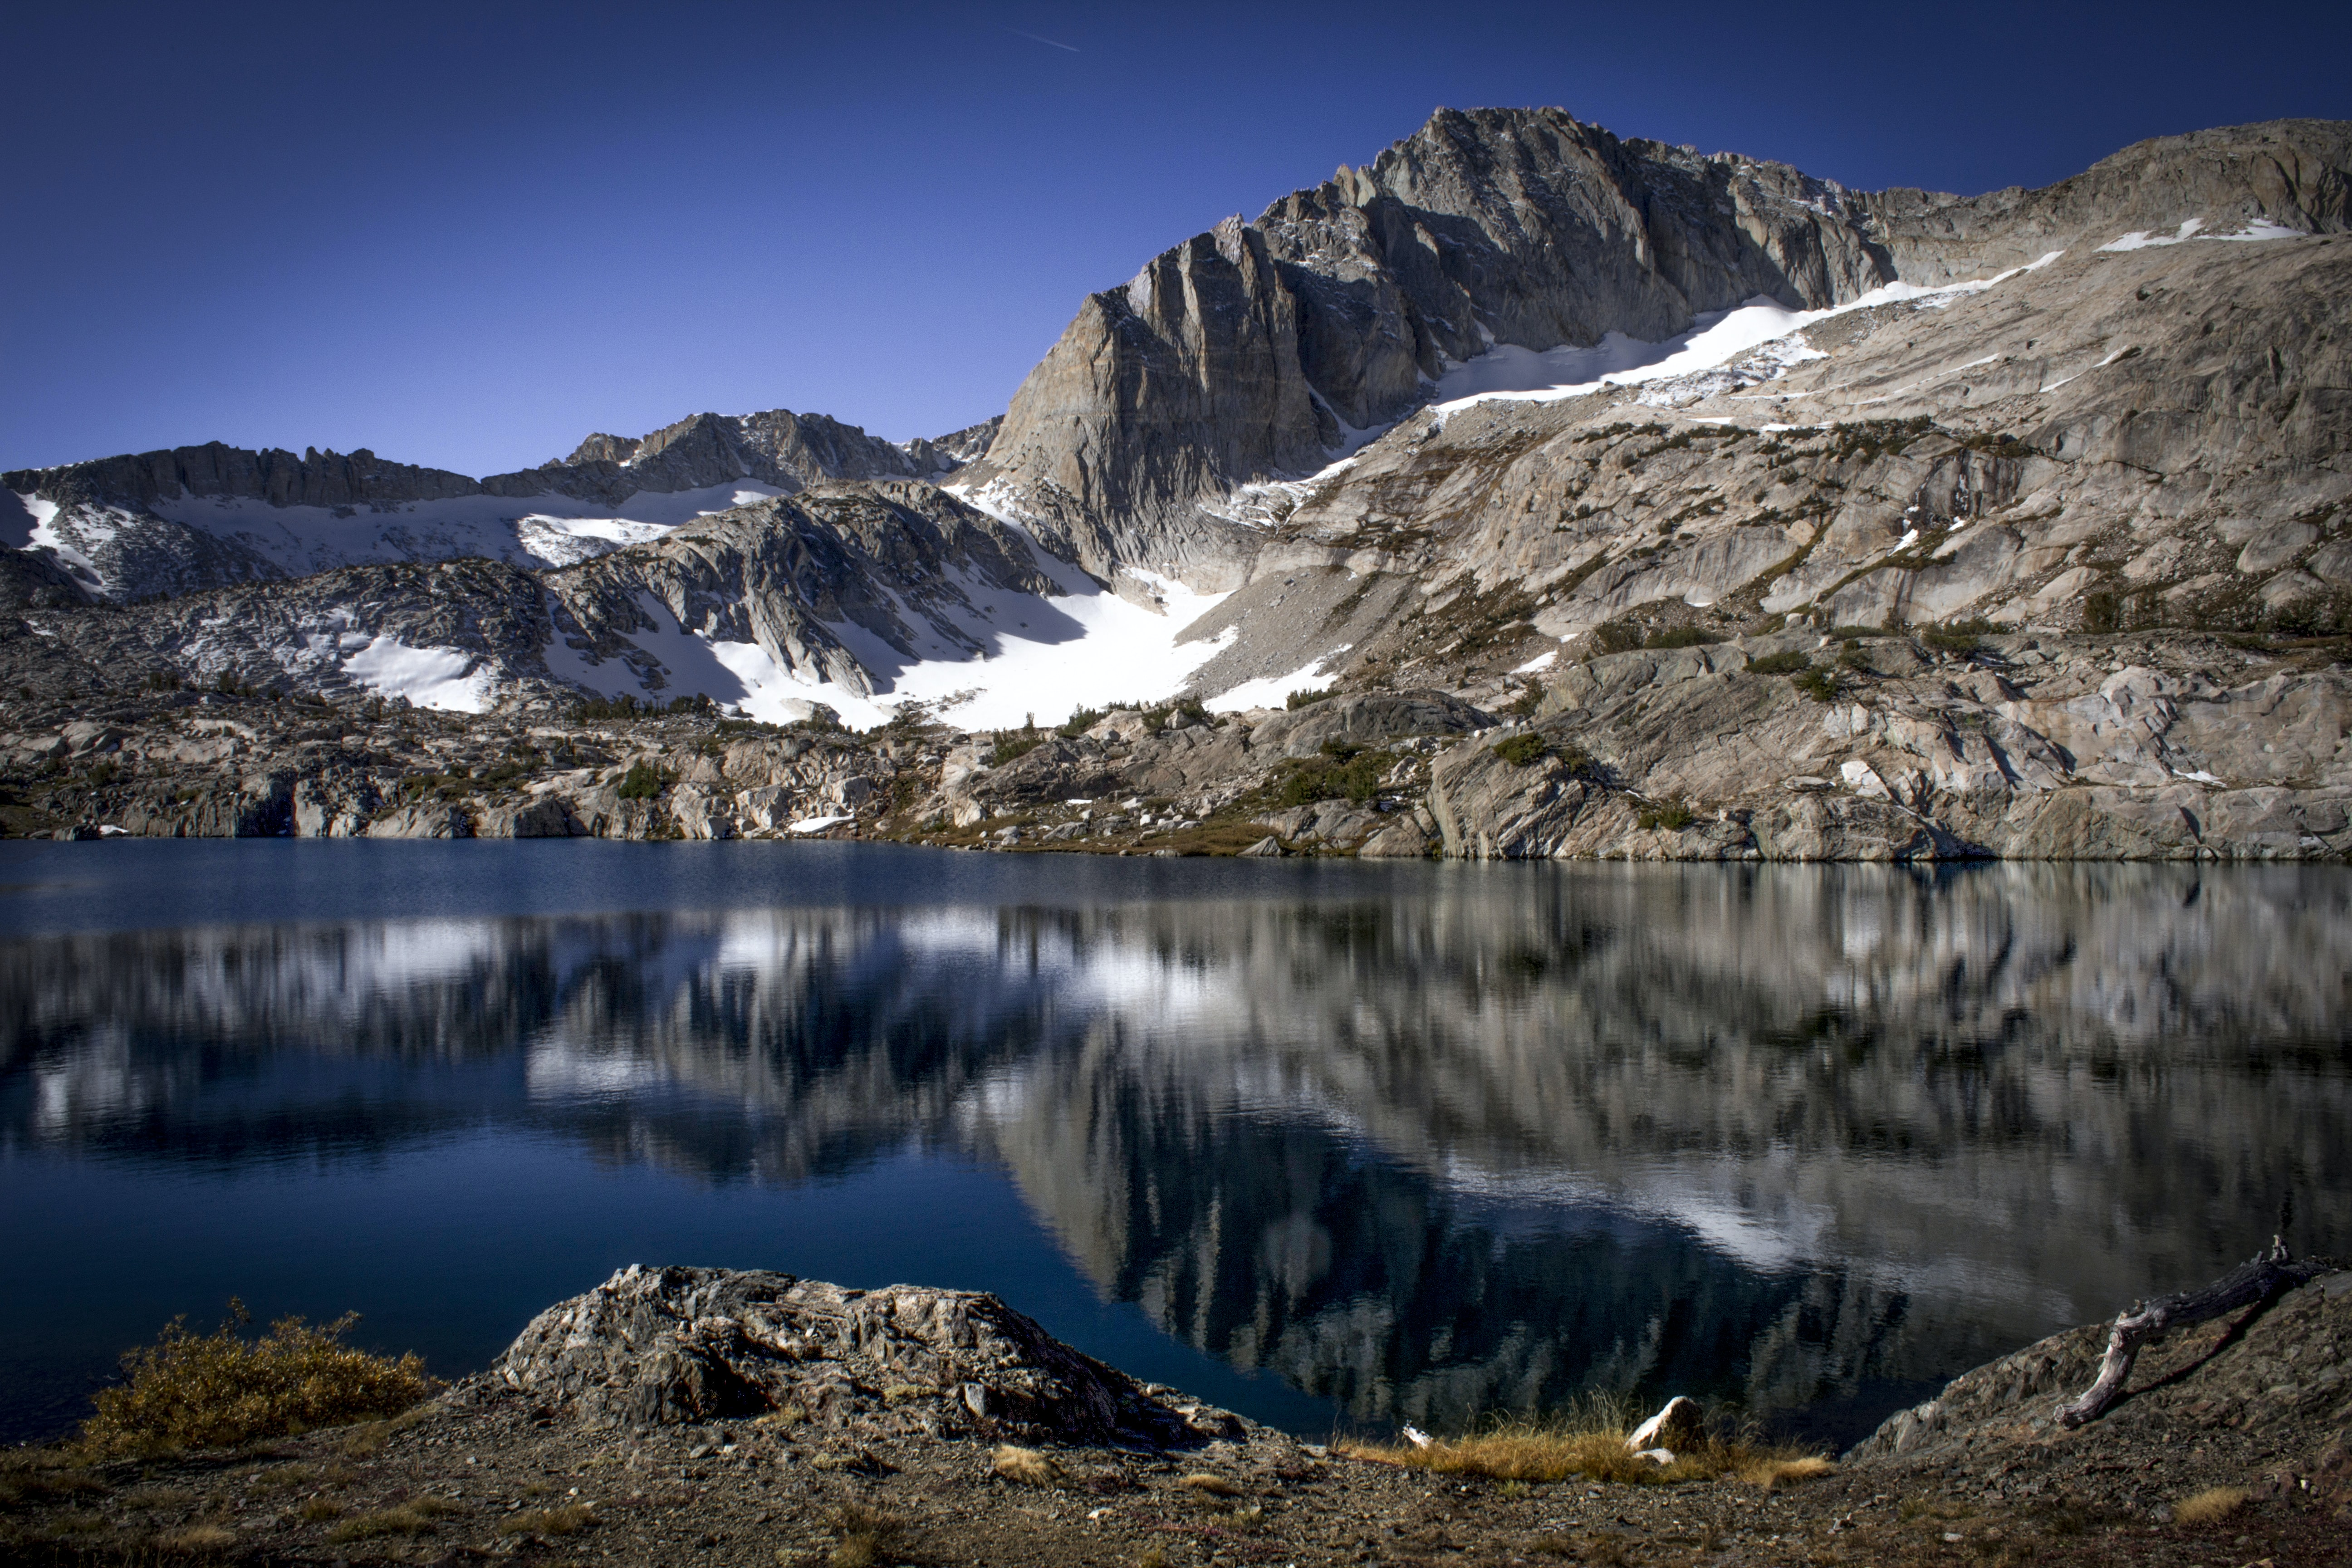 reflection photography of body of water and tundra mountain